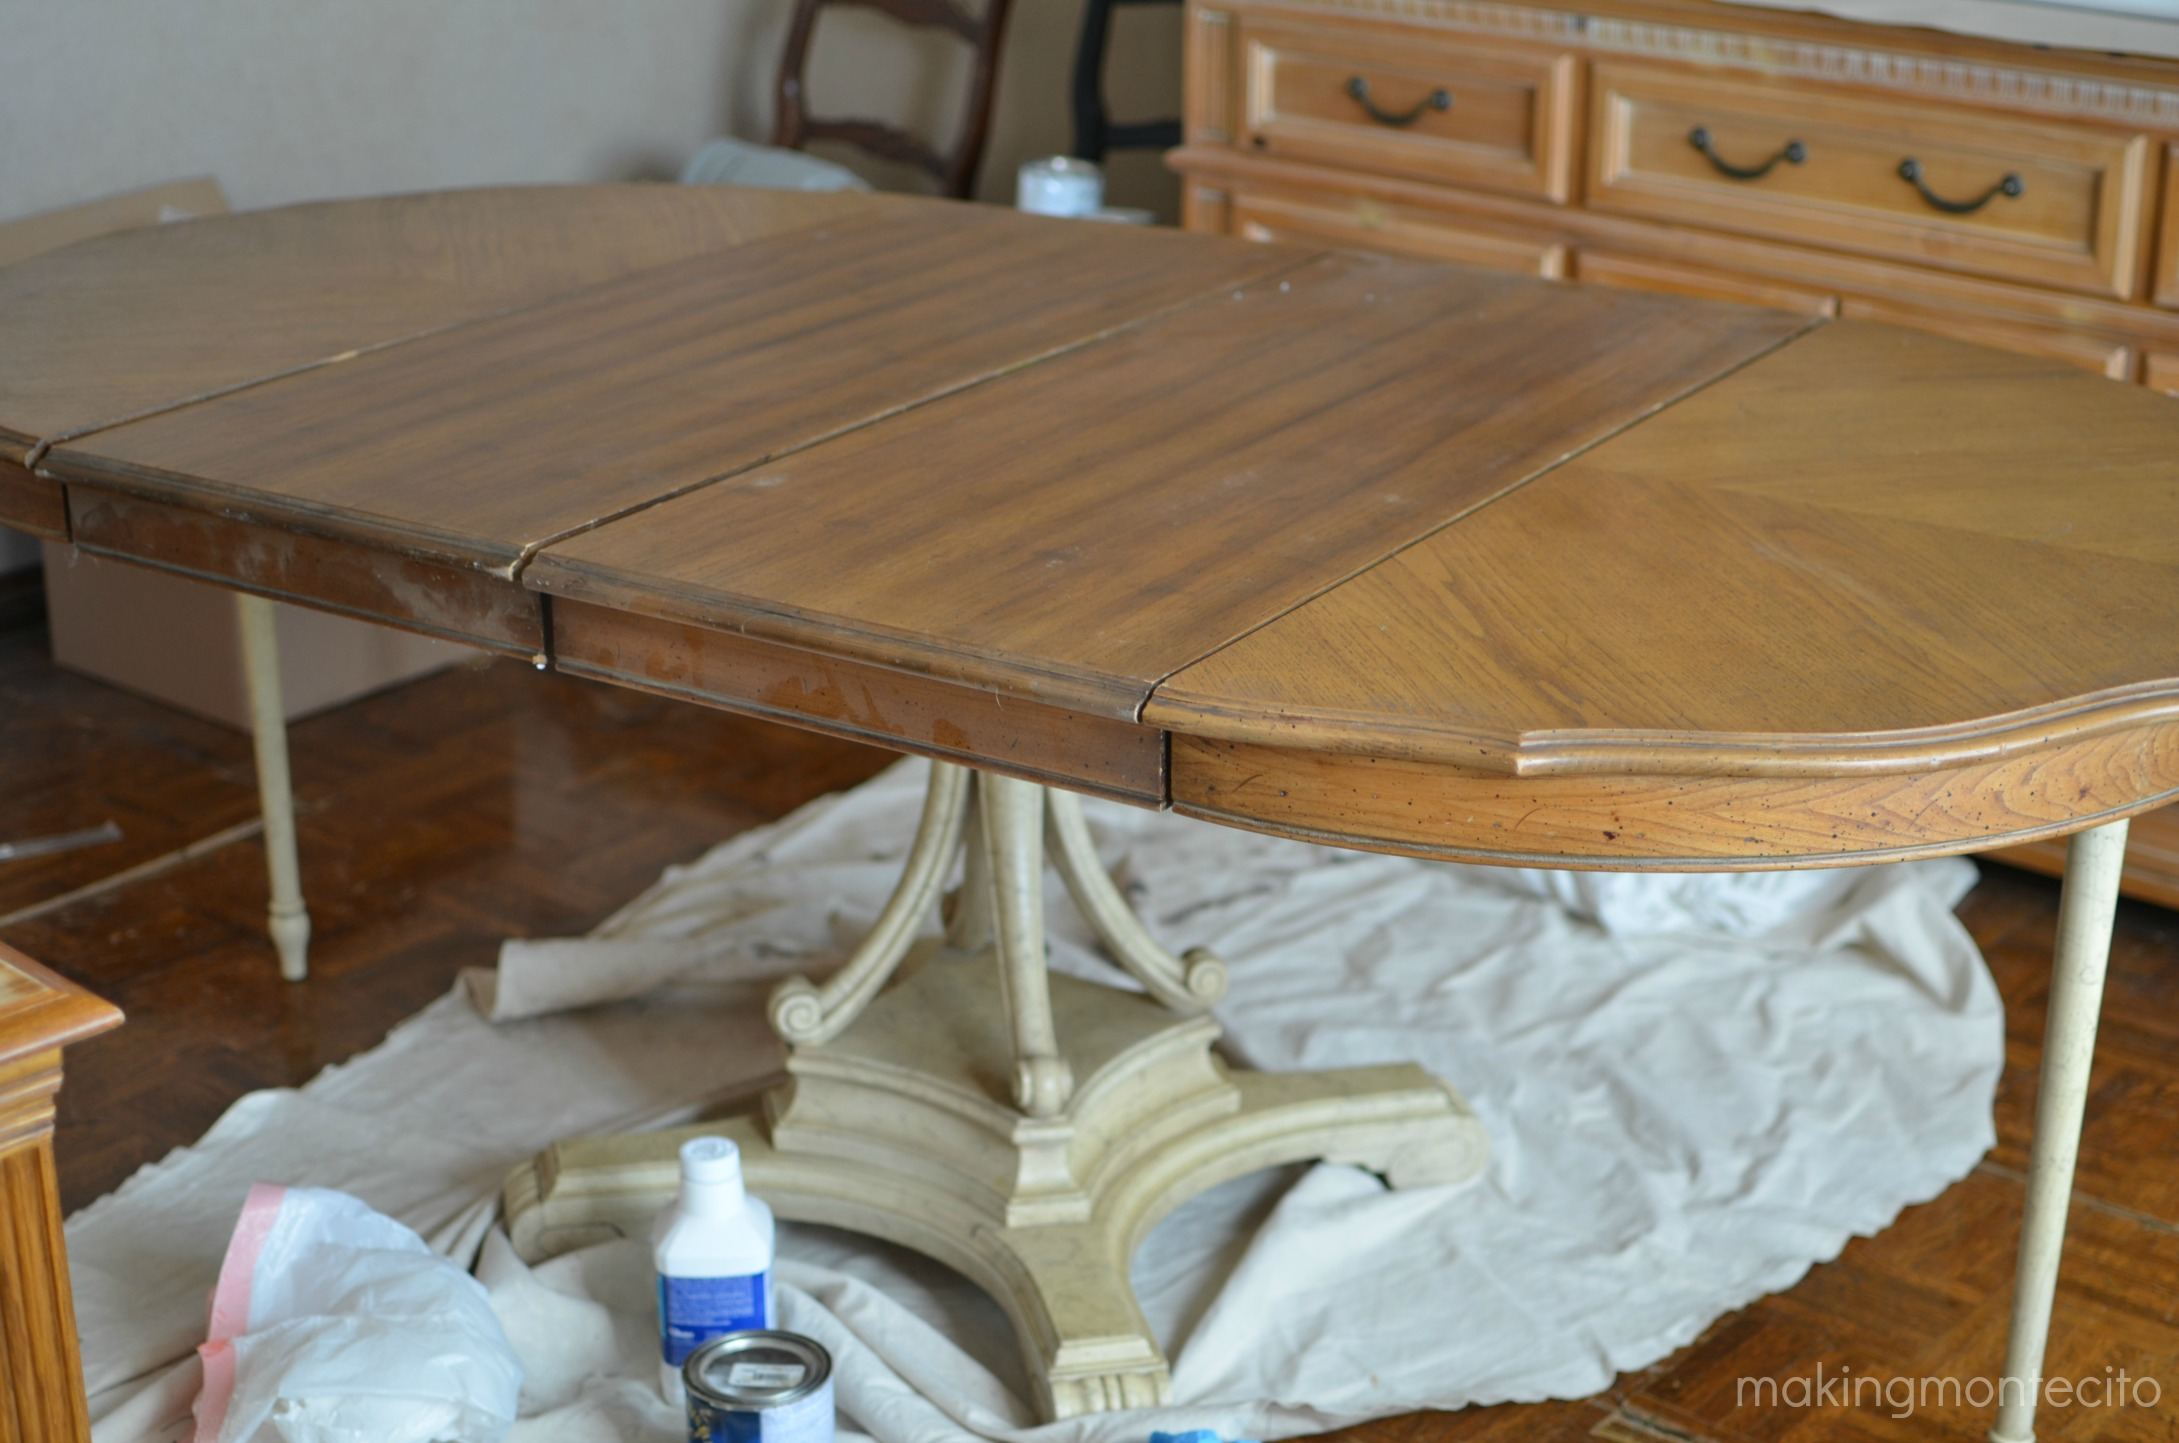 Vintage dining table updated - making montecito 2